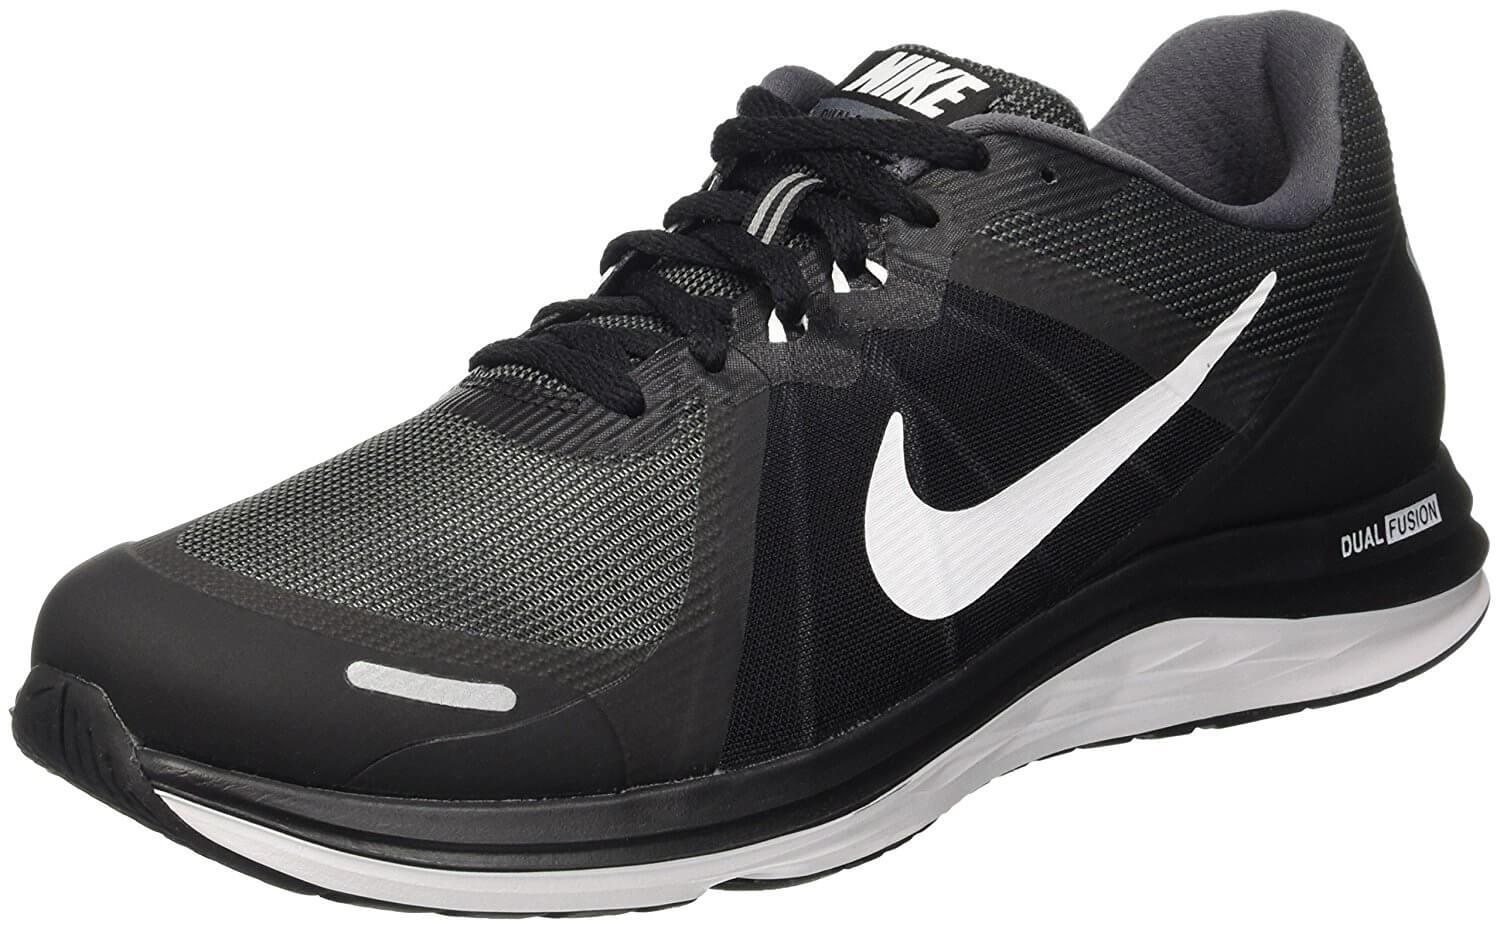 Nike Dual Fusion X 2 Review - To buy or